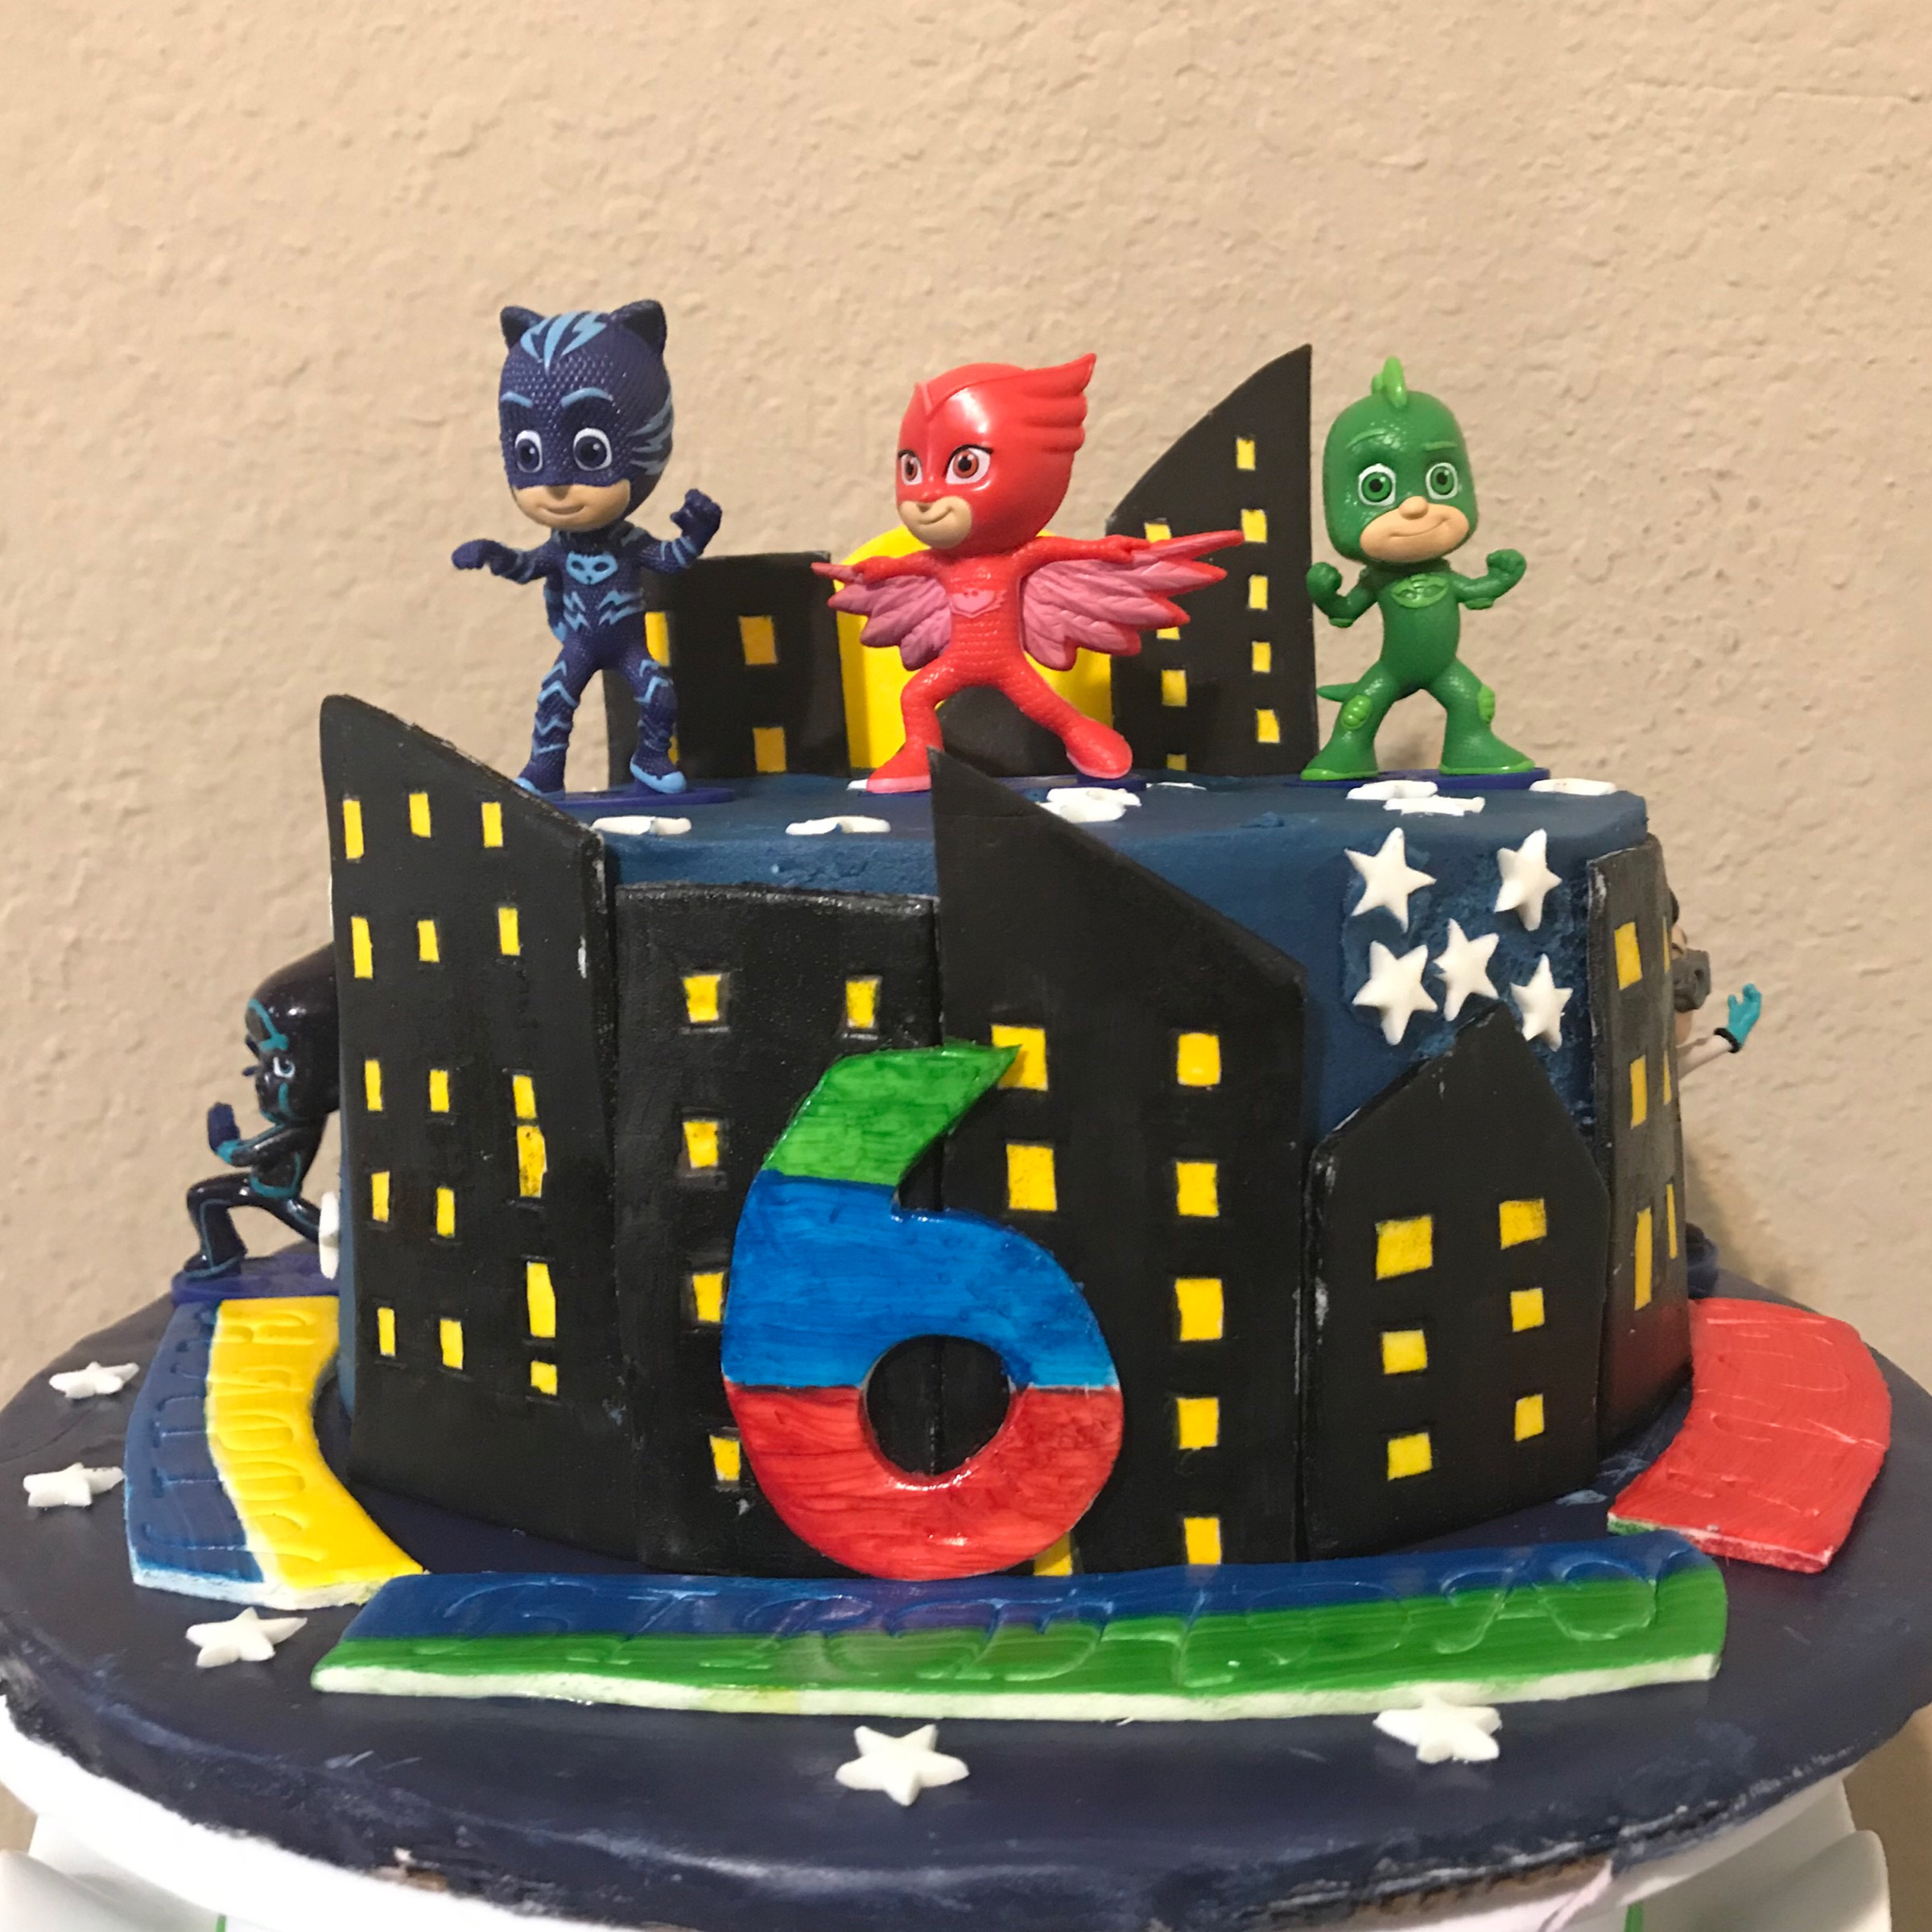 Superhero Themed Cake made by Jassy Sassy Sweets